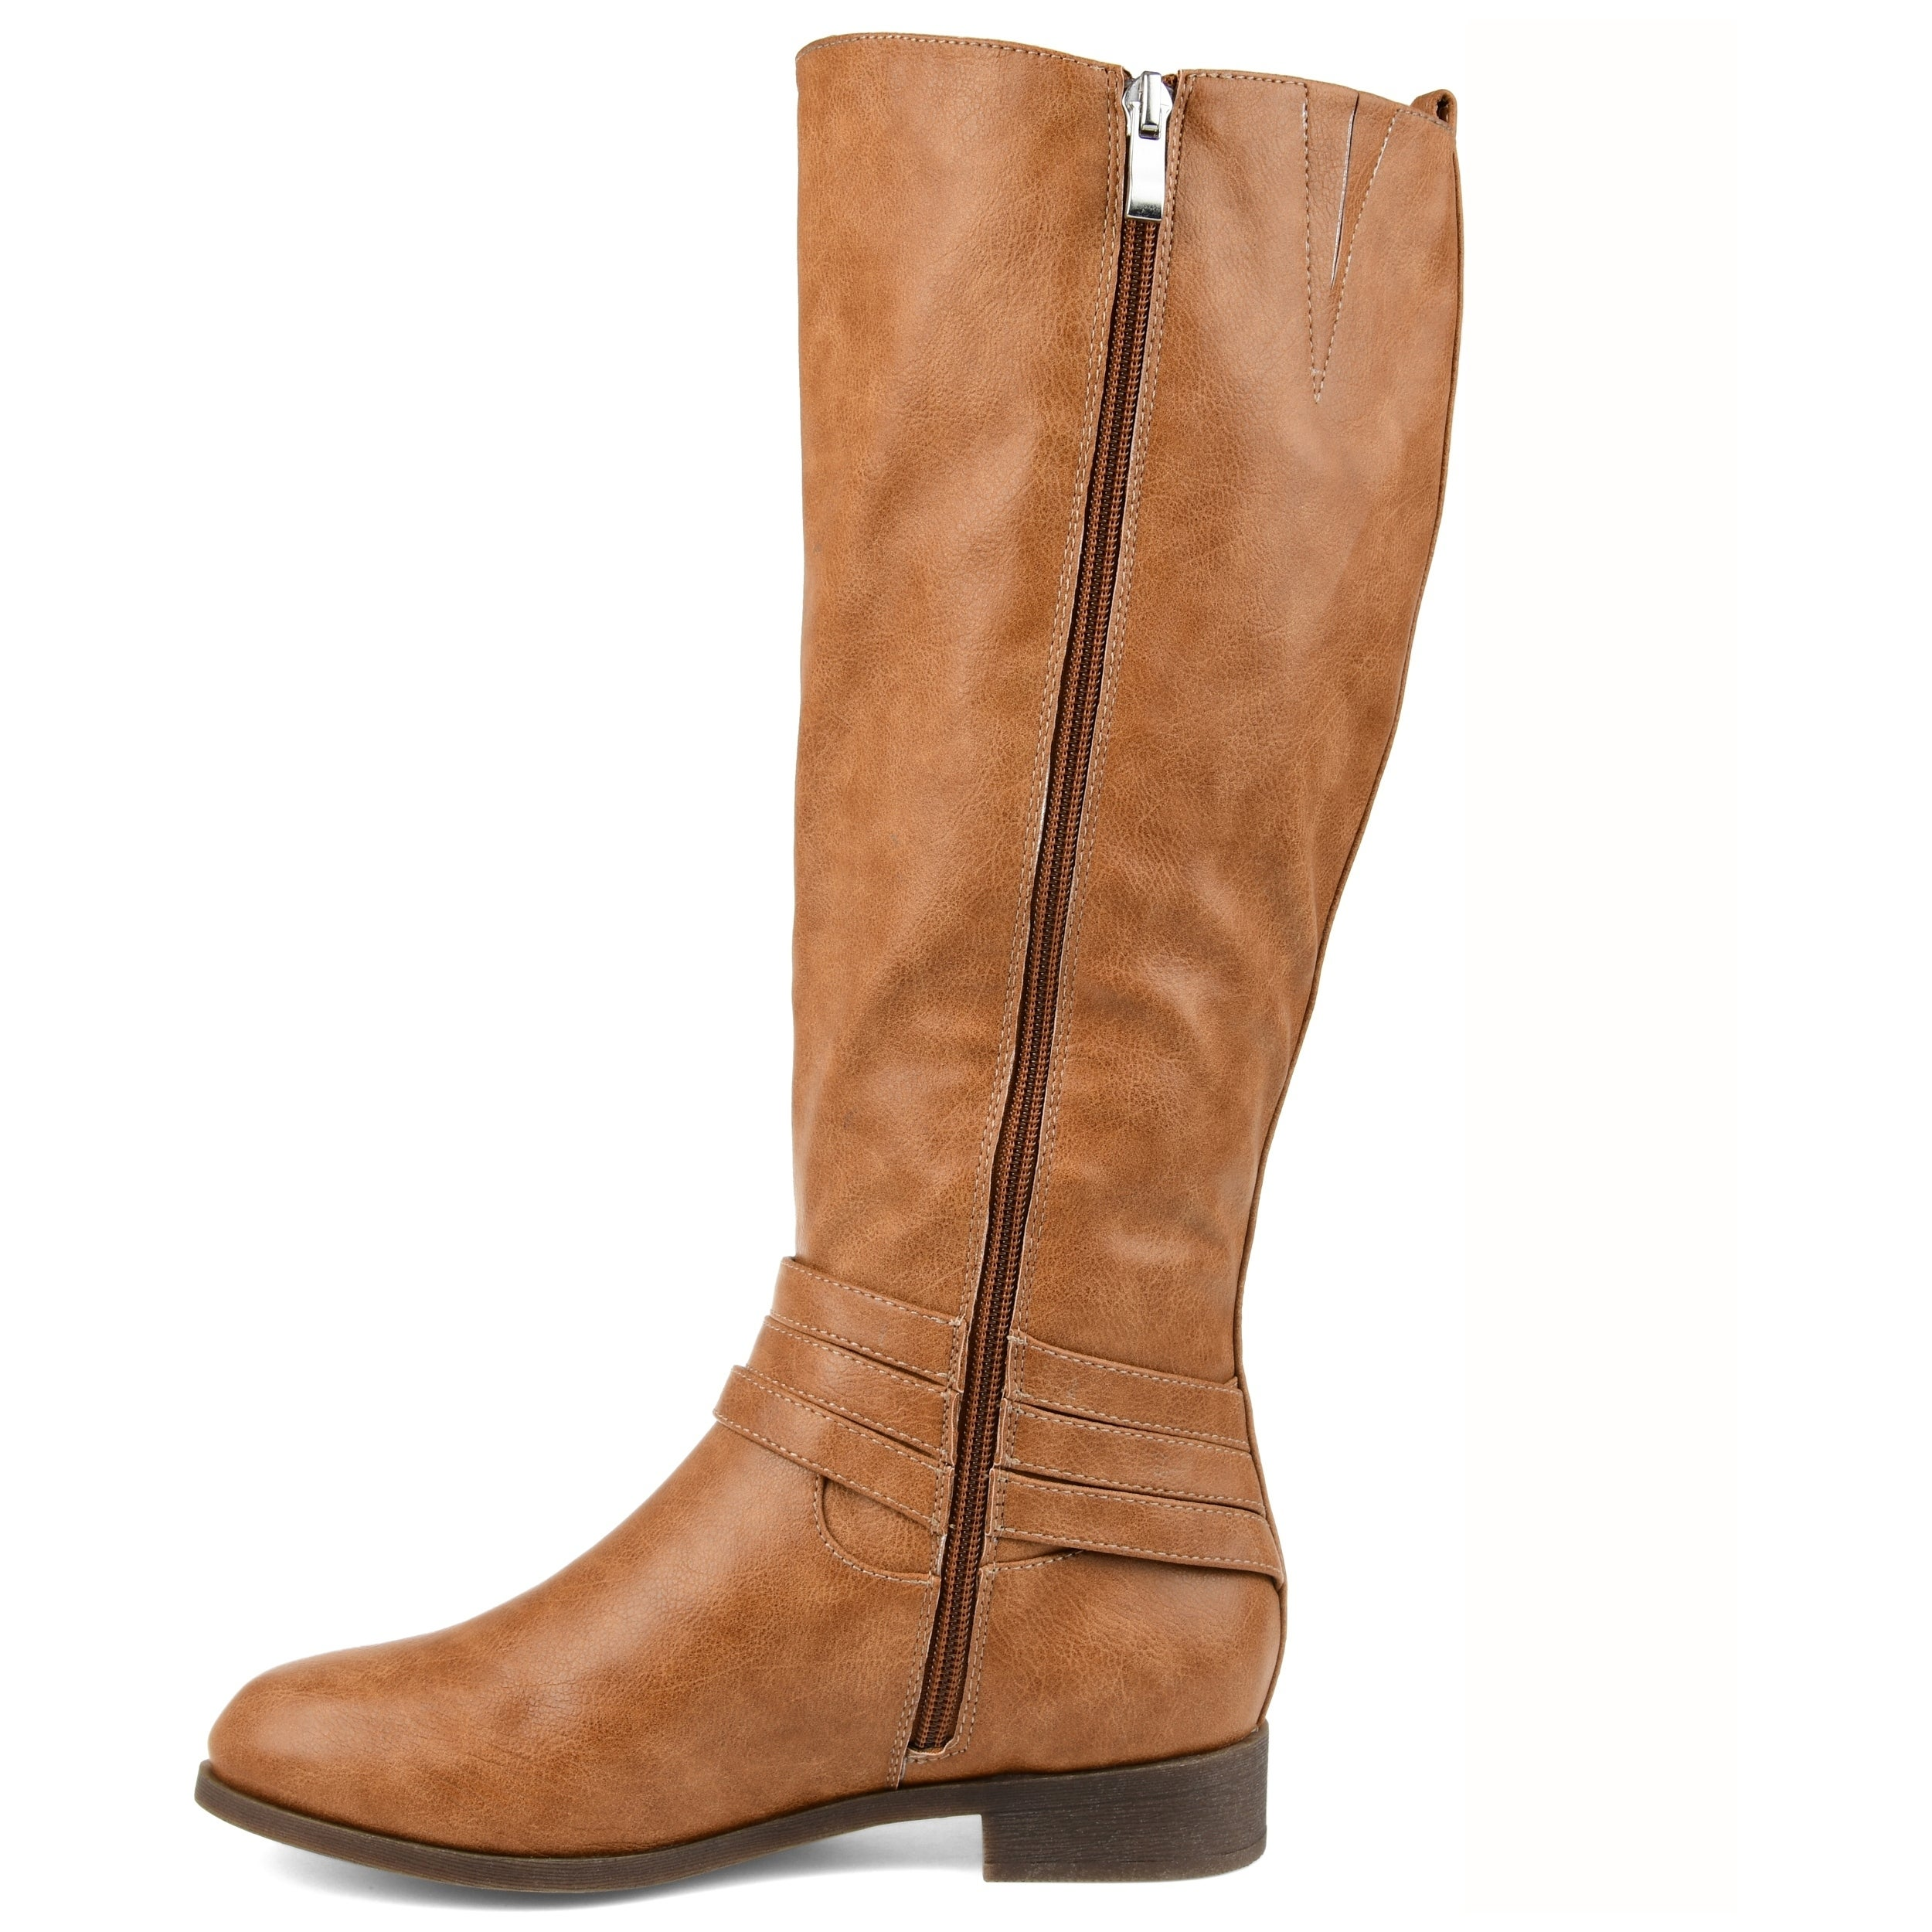 9a8ef2a32d4 Shop Journee Collection Women s Ivie Boot - Free Shipping Today - Overstock  - 23463247